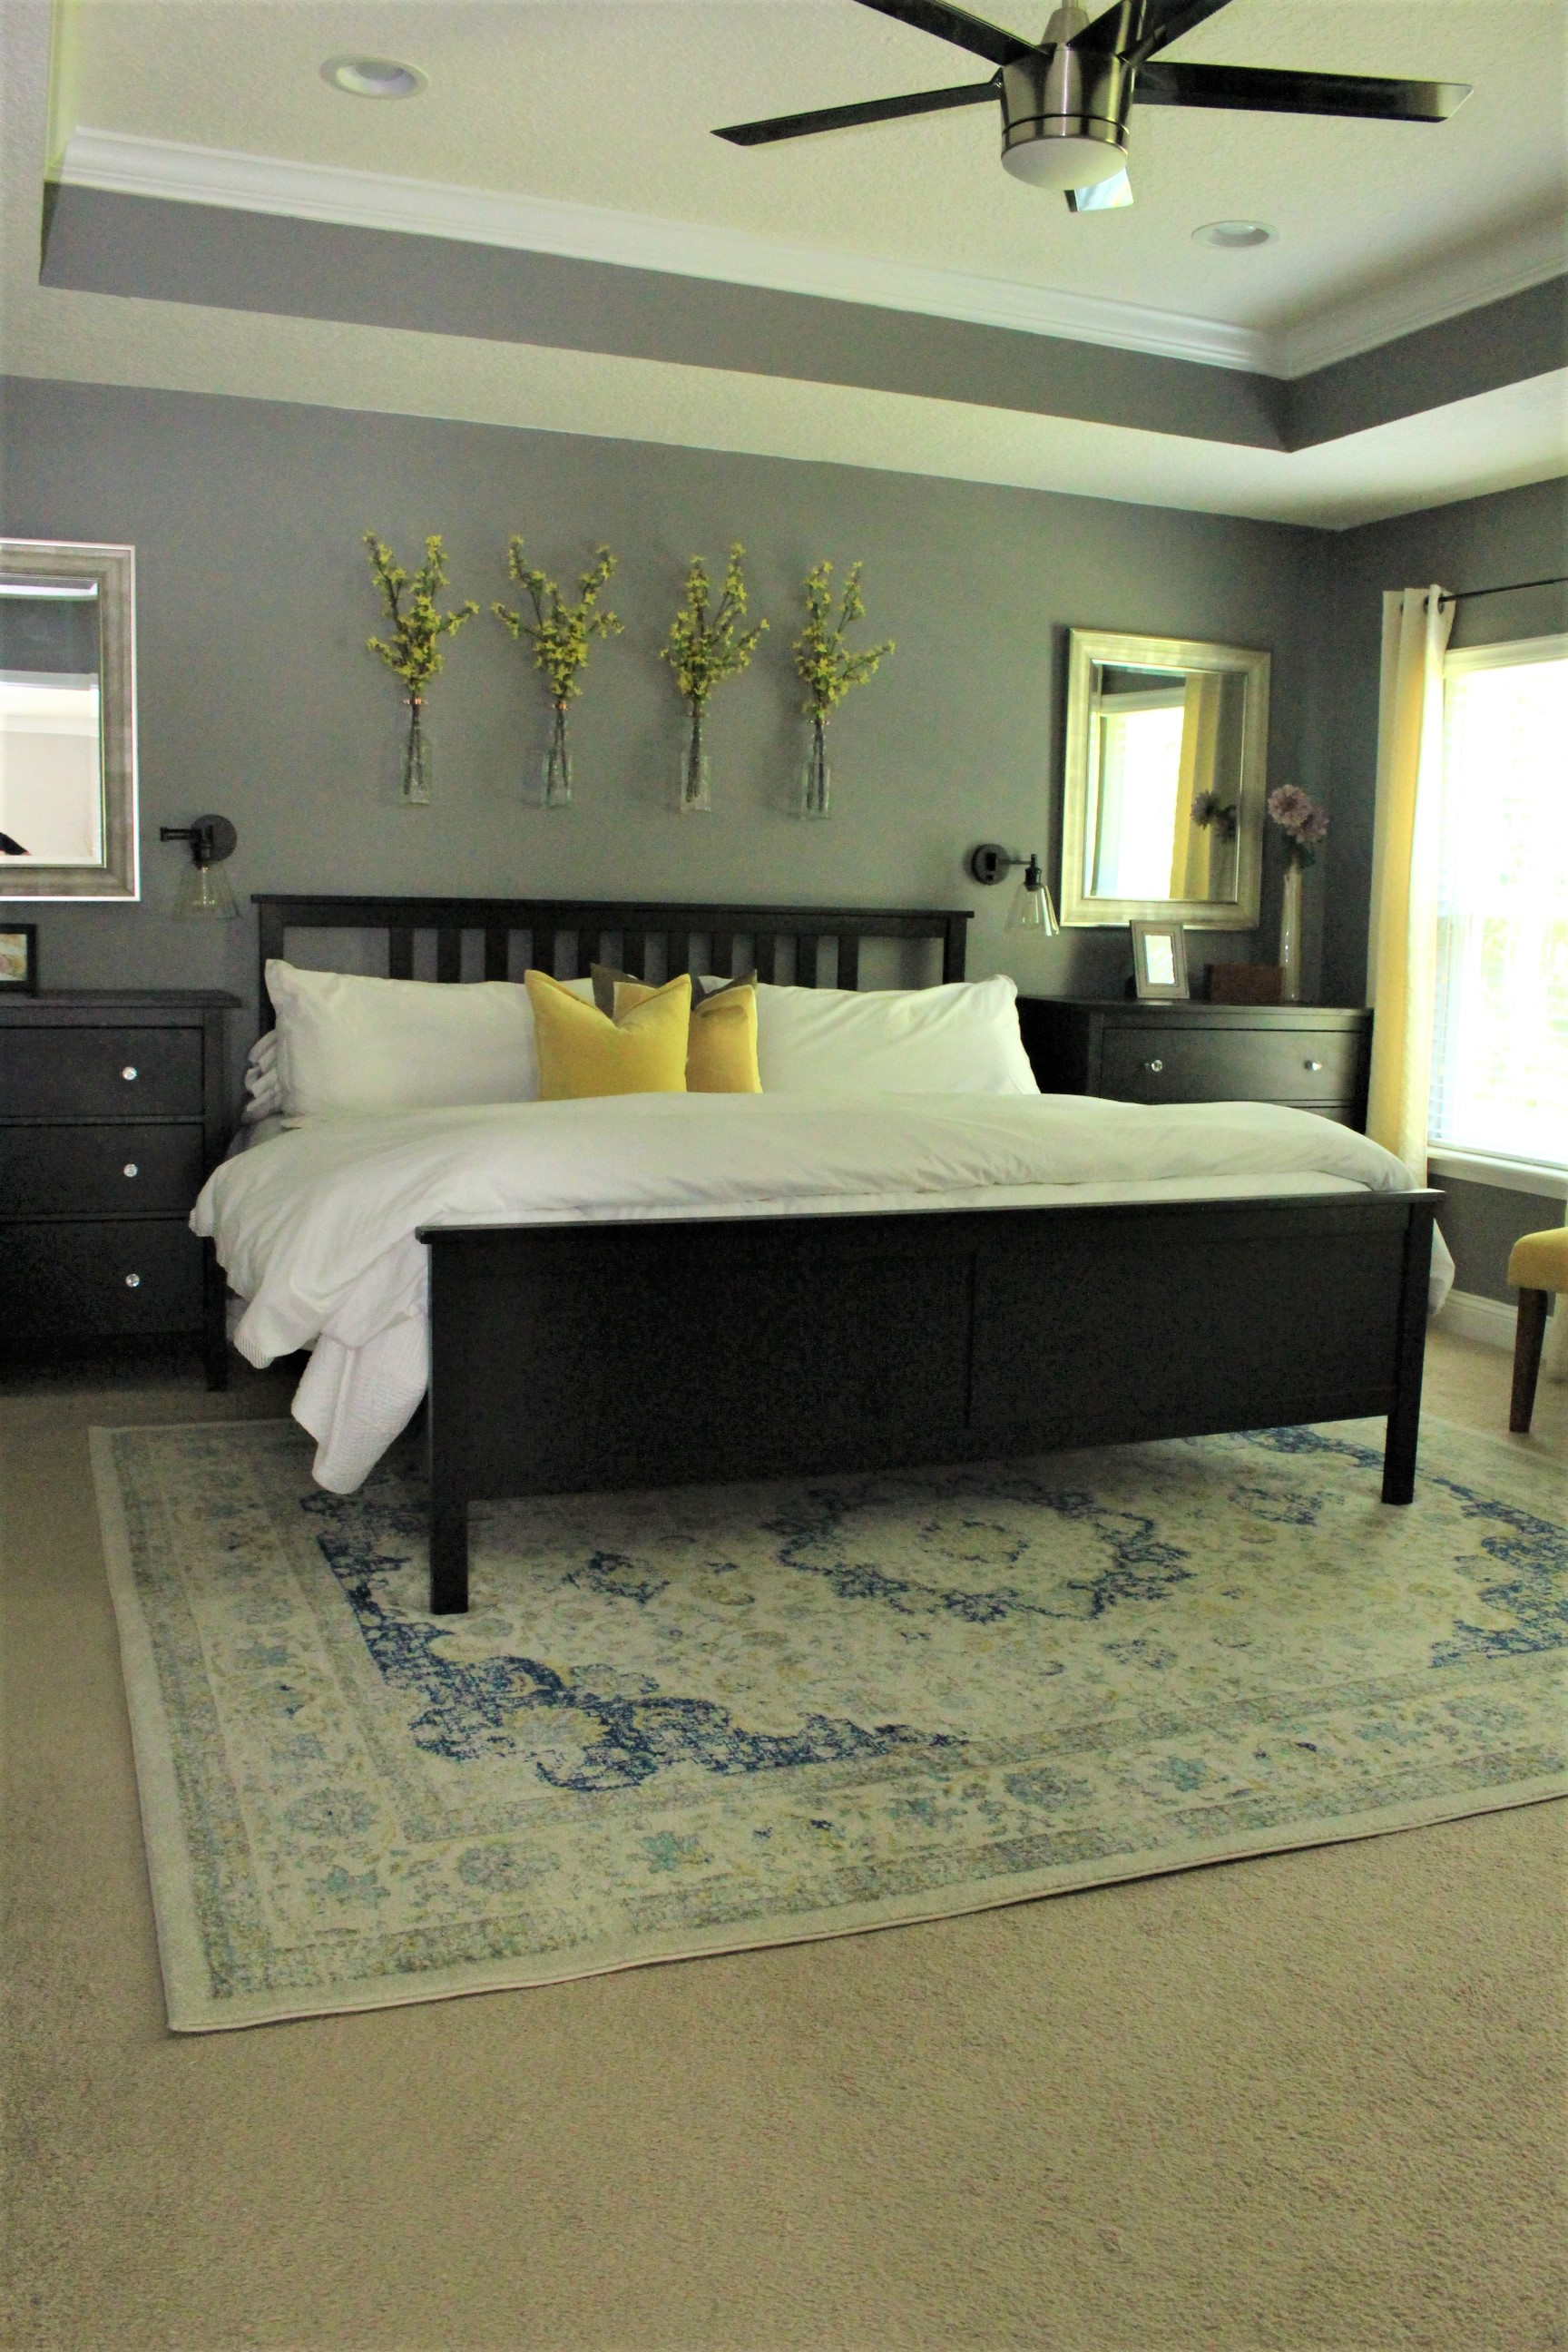 decorating mistakes to avoid